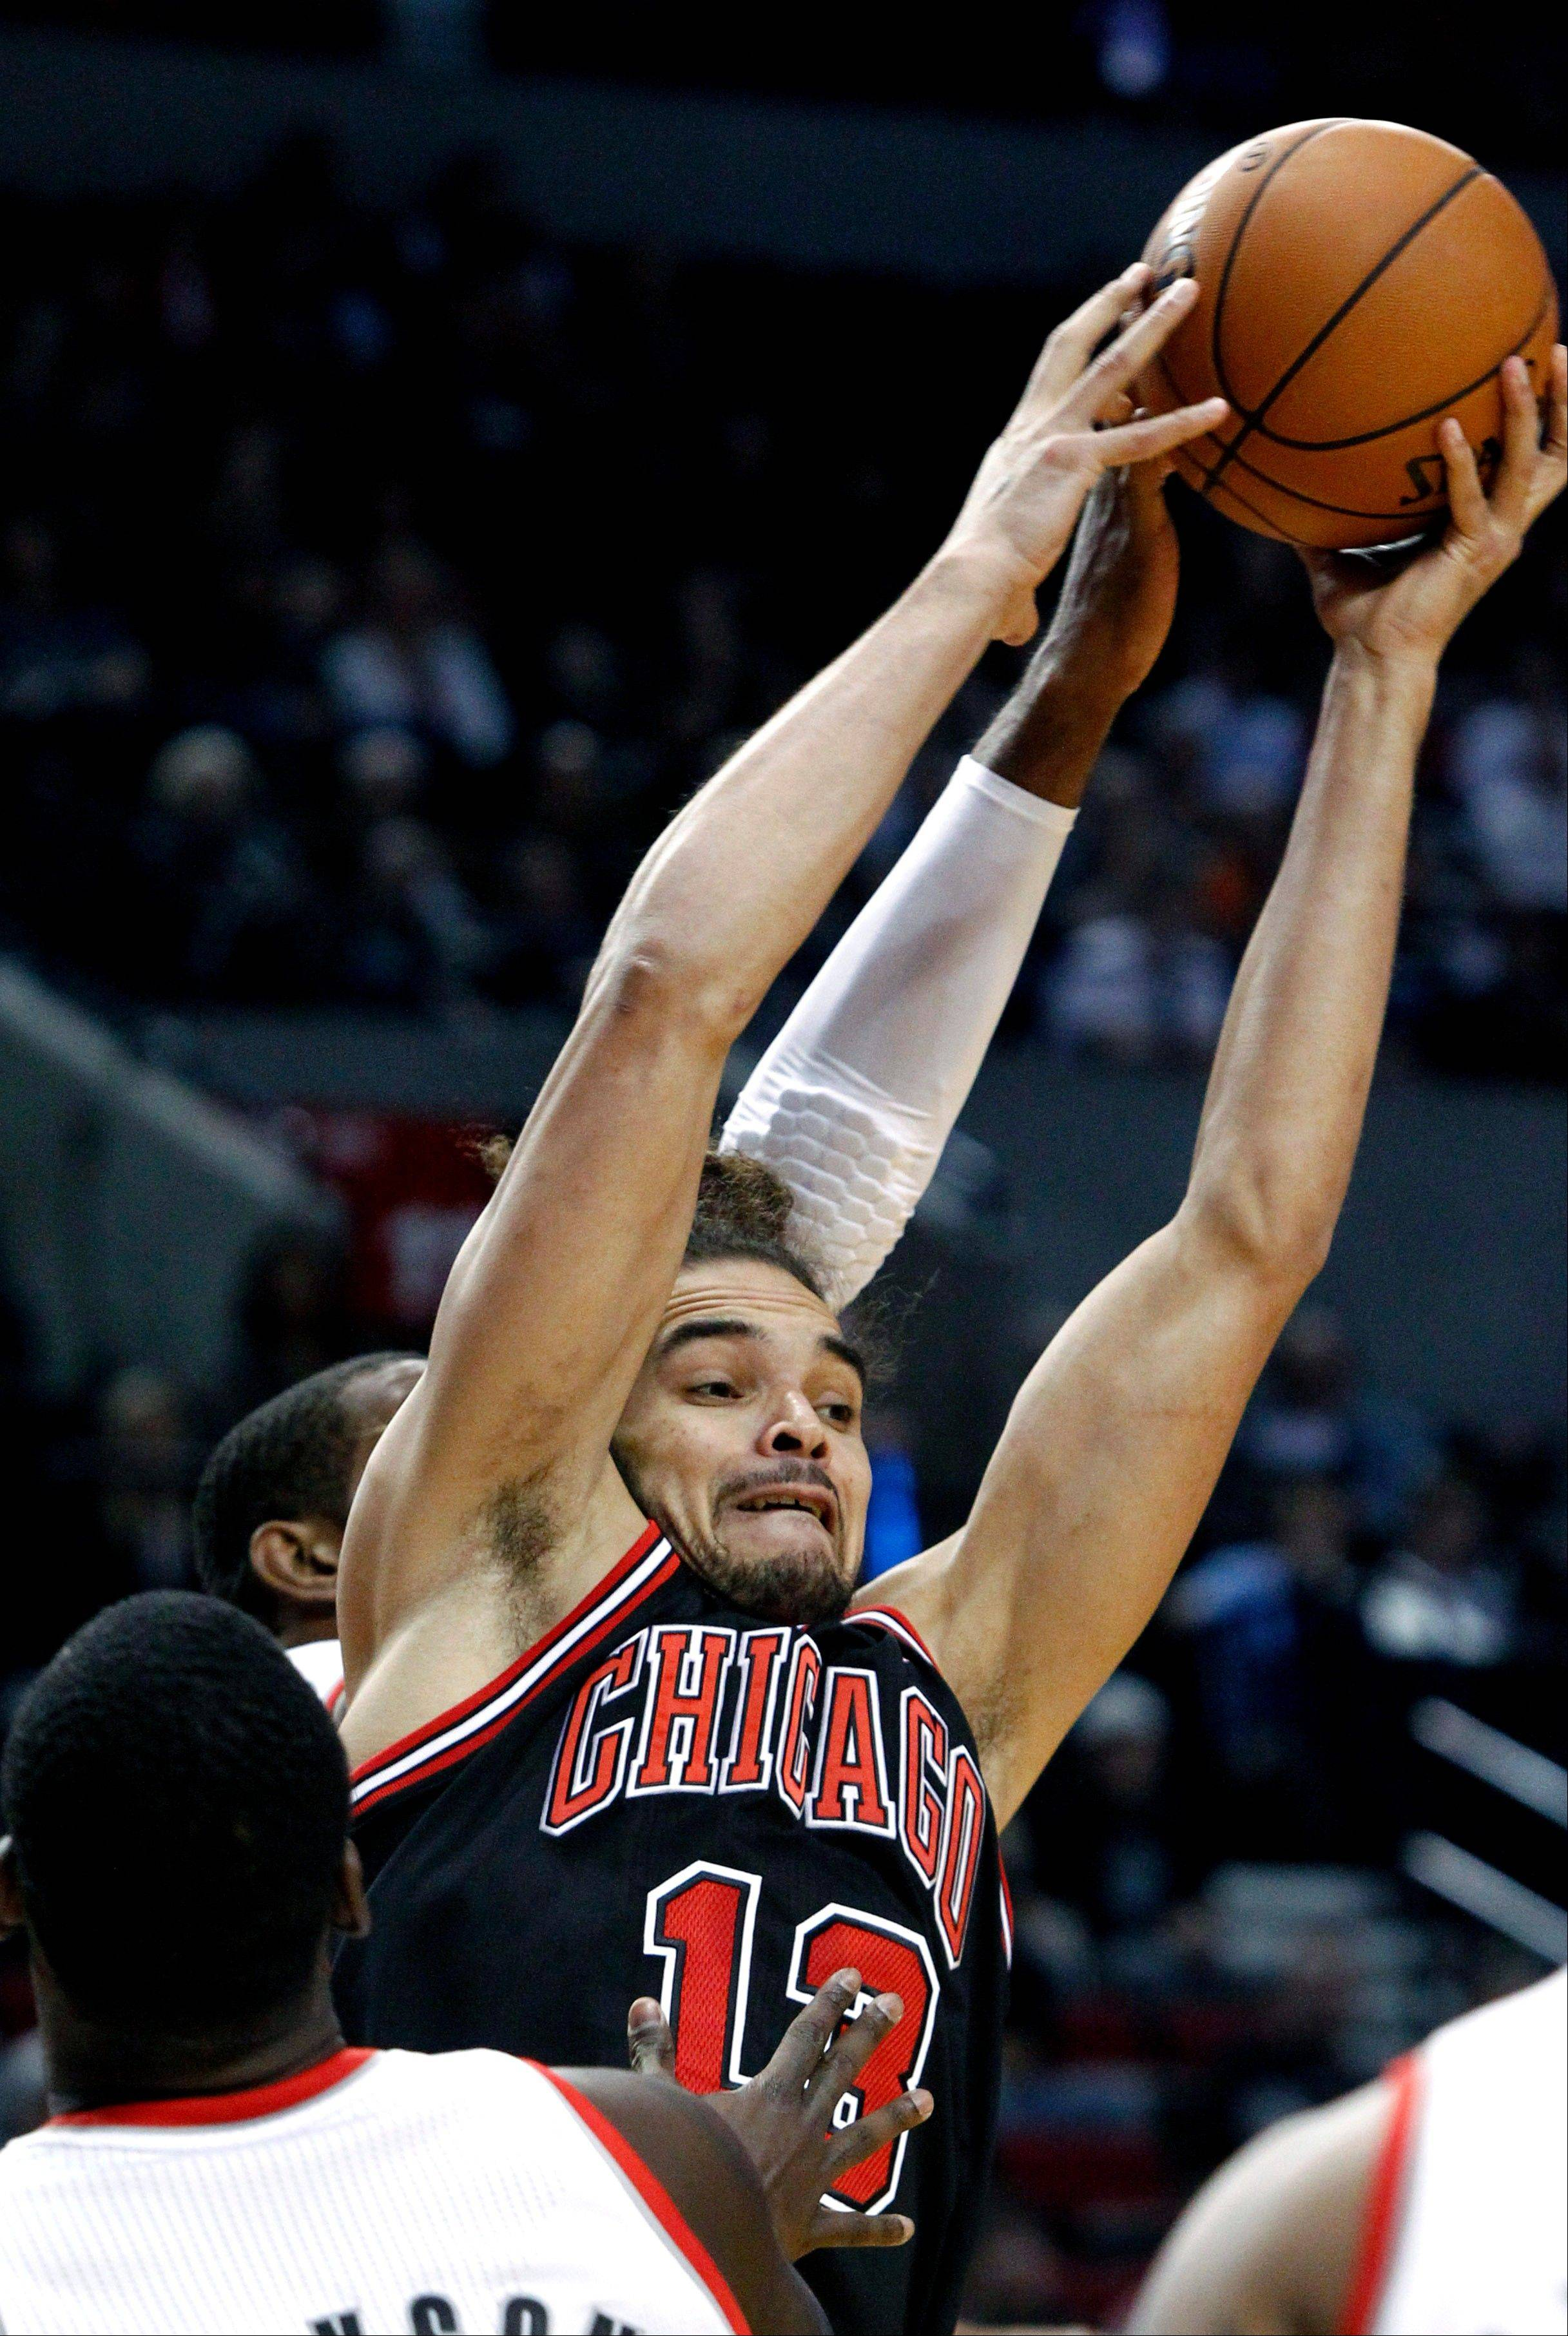 Chicago Bulls center Joakim Noah, right, pulls in an offensive rebound against Portland Trail Blazers forward LaMarcus Aldridge during the first quarter in Portland, Ore., Sunday.